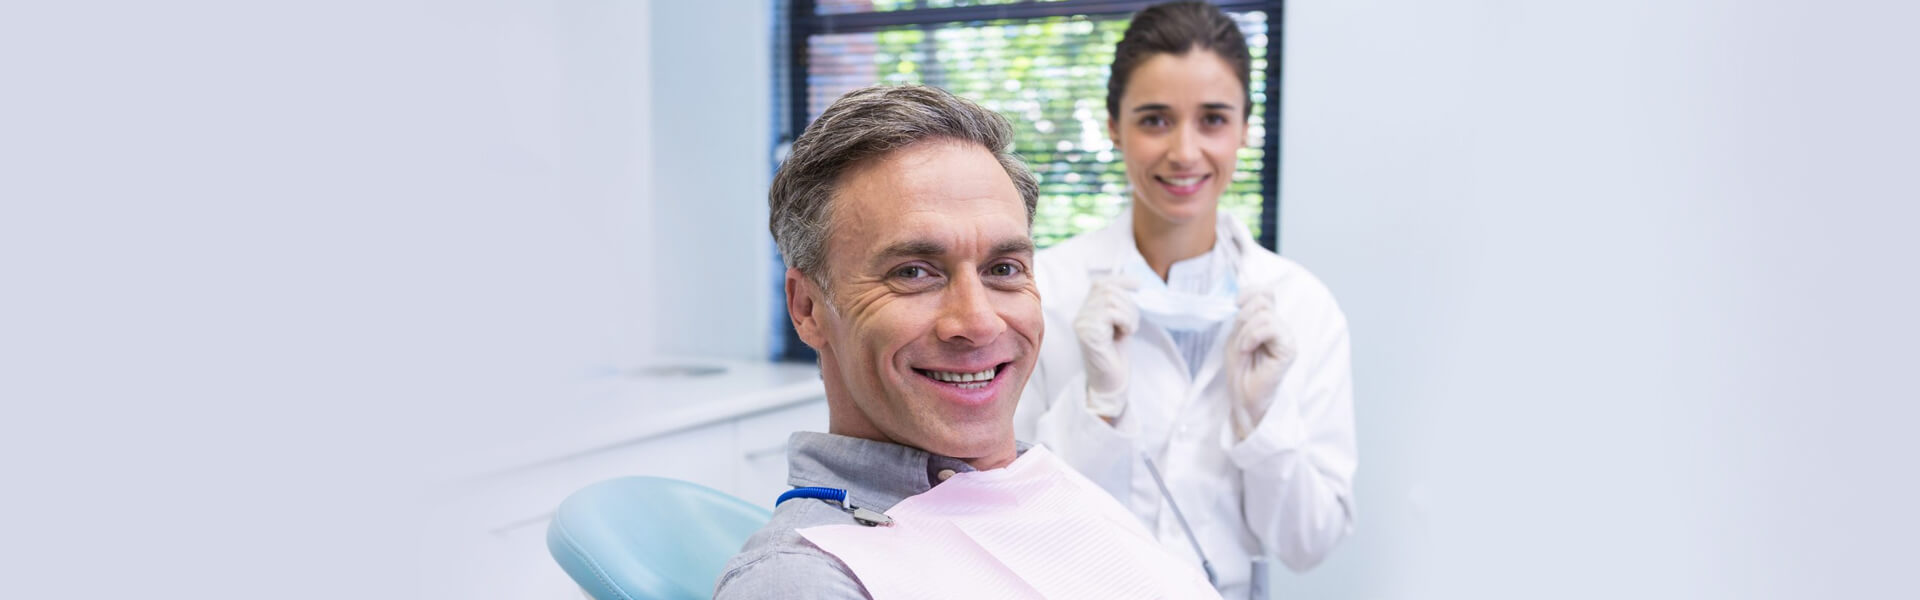 6 Vital Things You Need to Know About Tooth Extraction